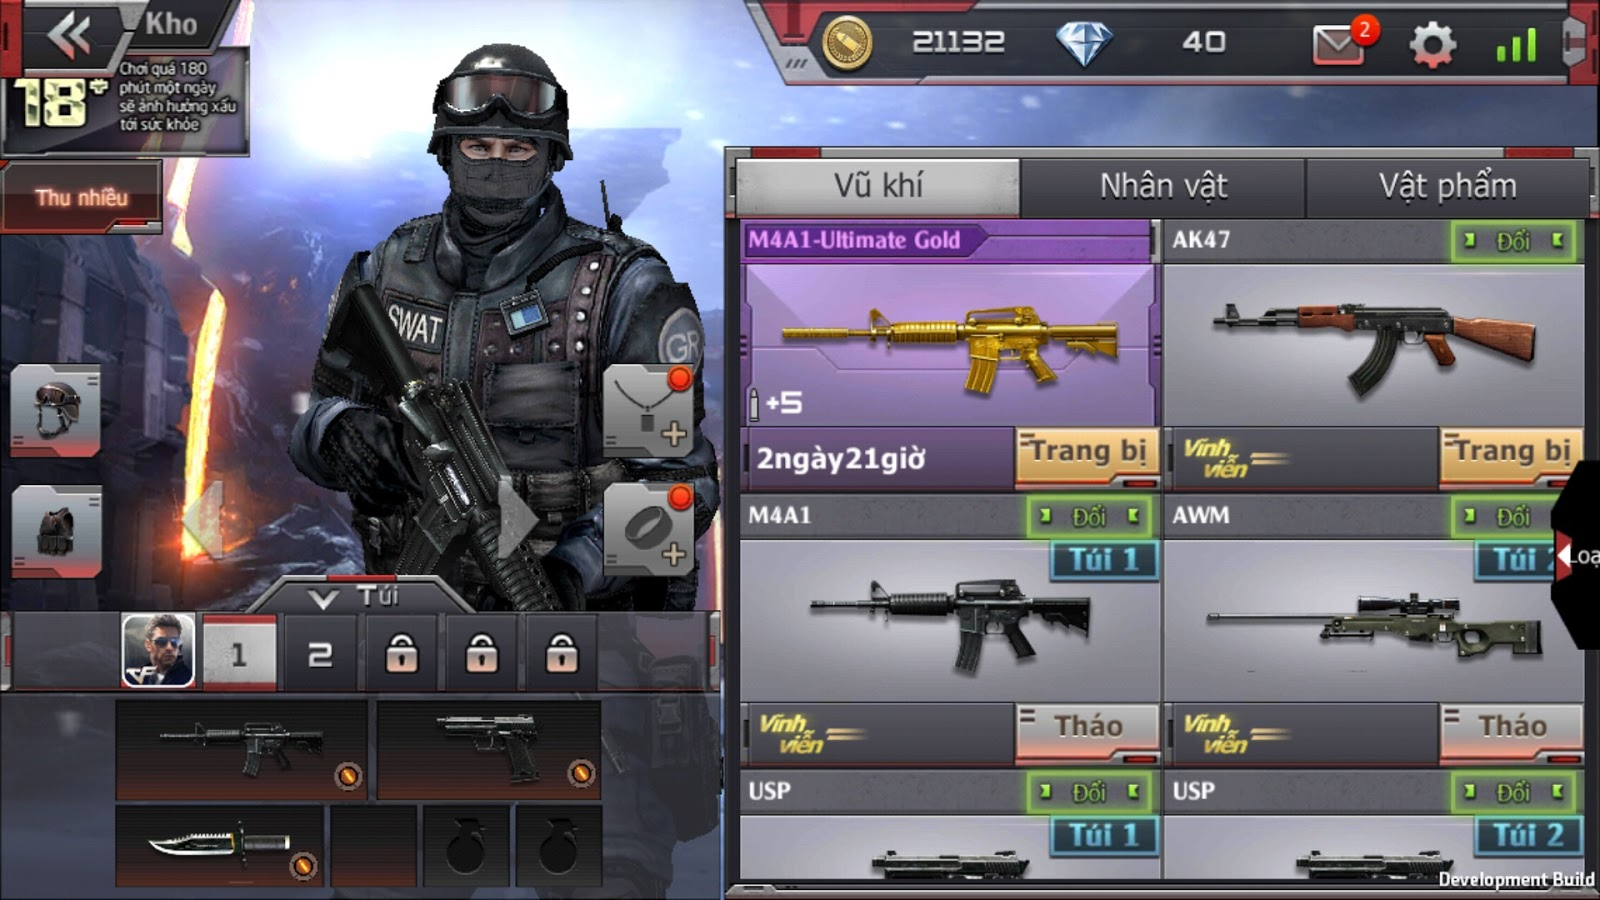 Hình ảnh khocfmobile in Hack shop Crossfire legends cho android